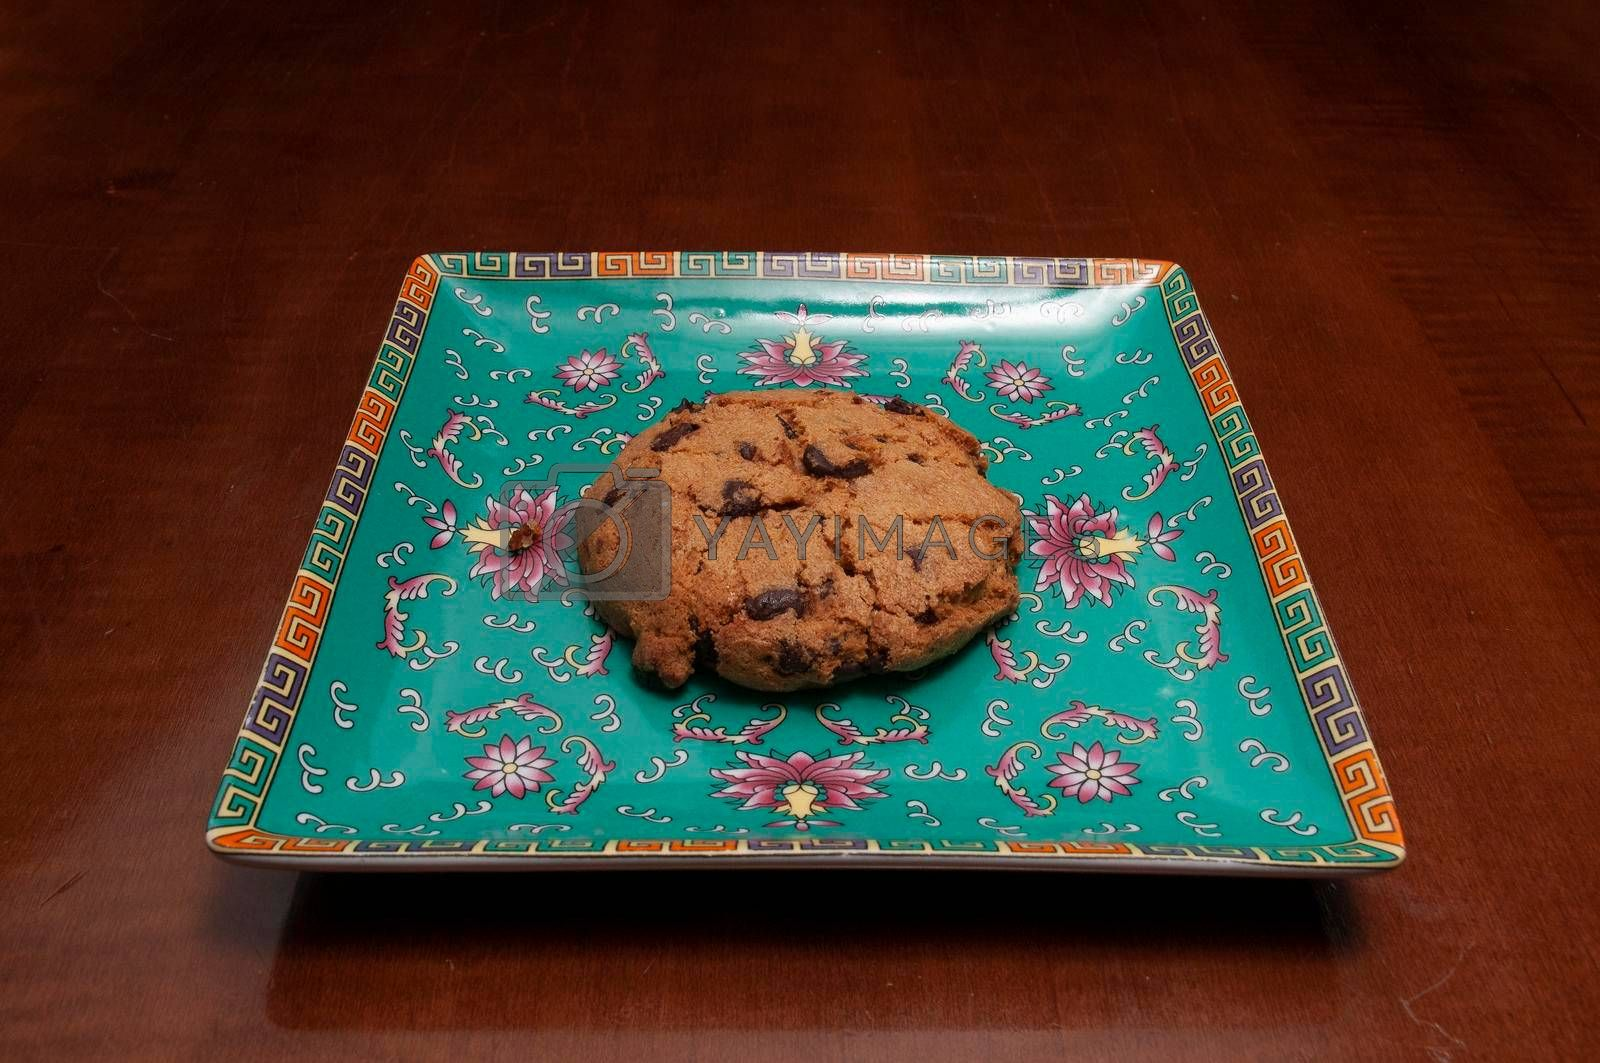 Delicious baked good known as the chocolate chip cookie